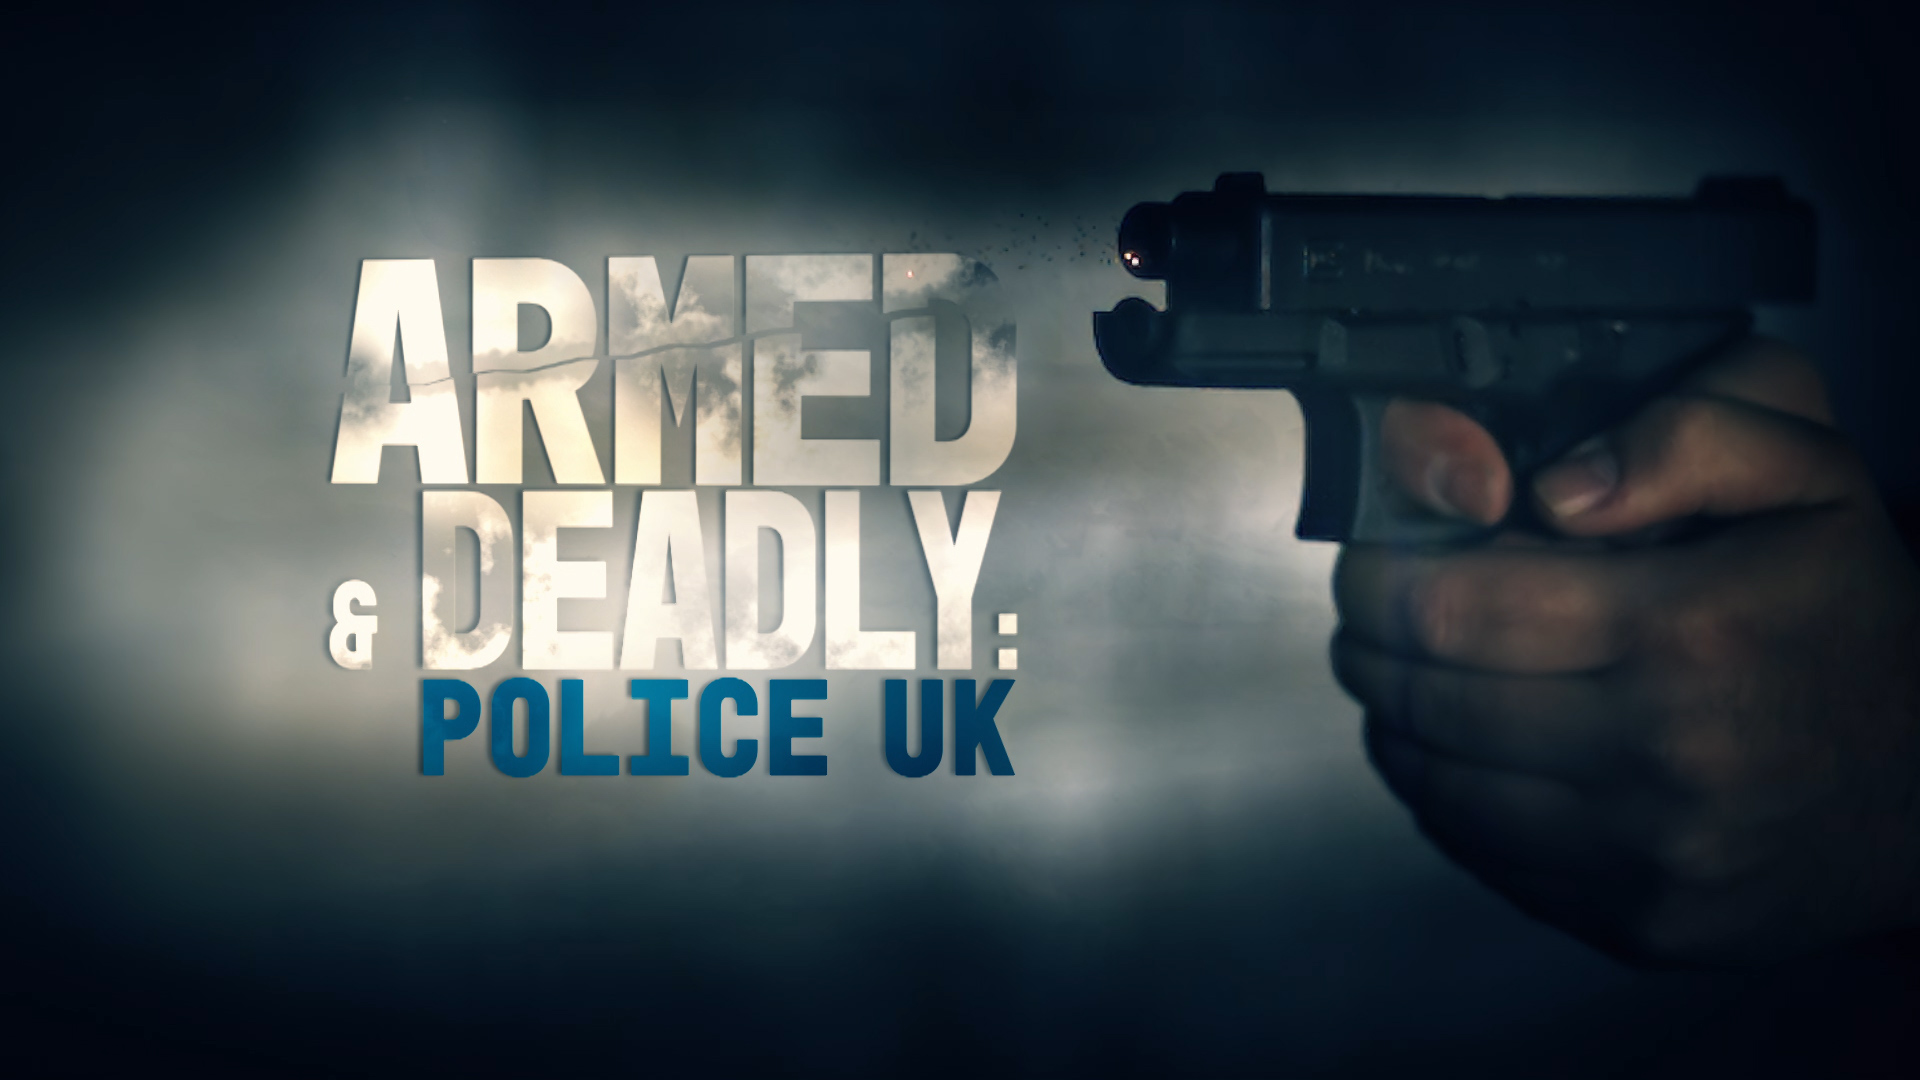 Police UK: Armed and Deadly title card logo